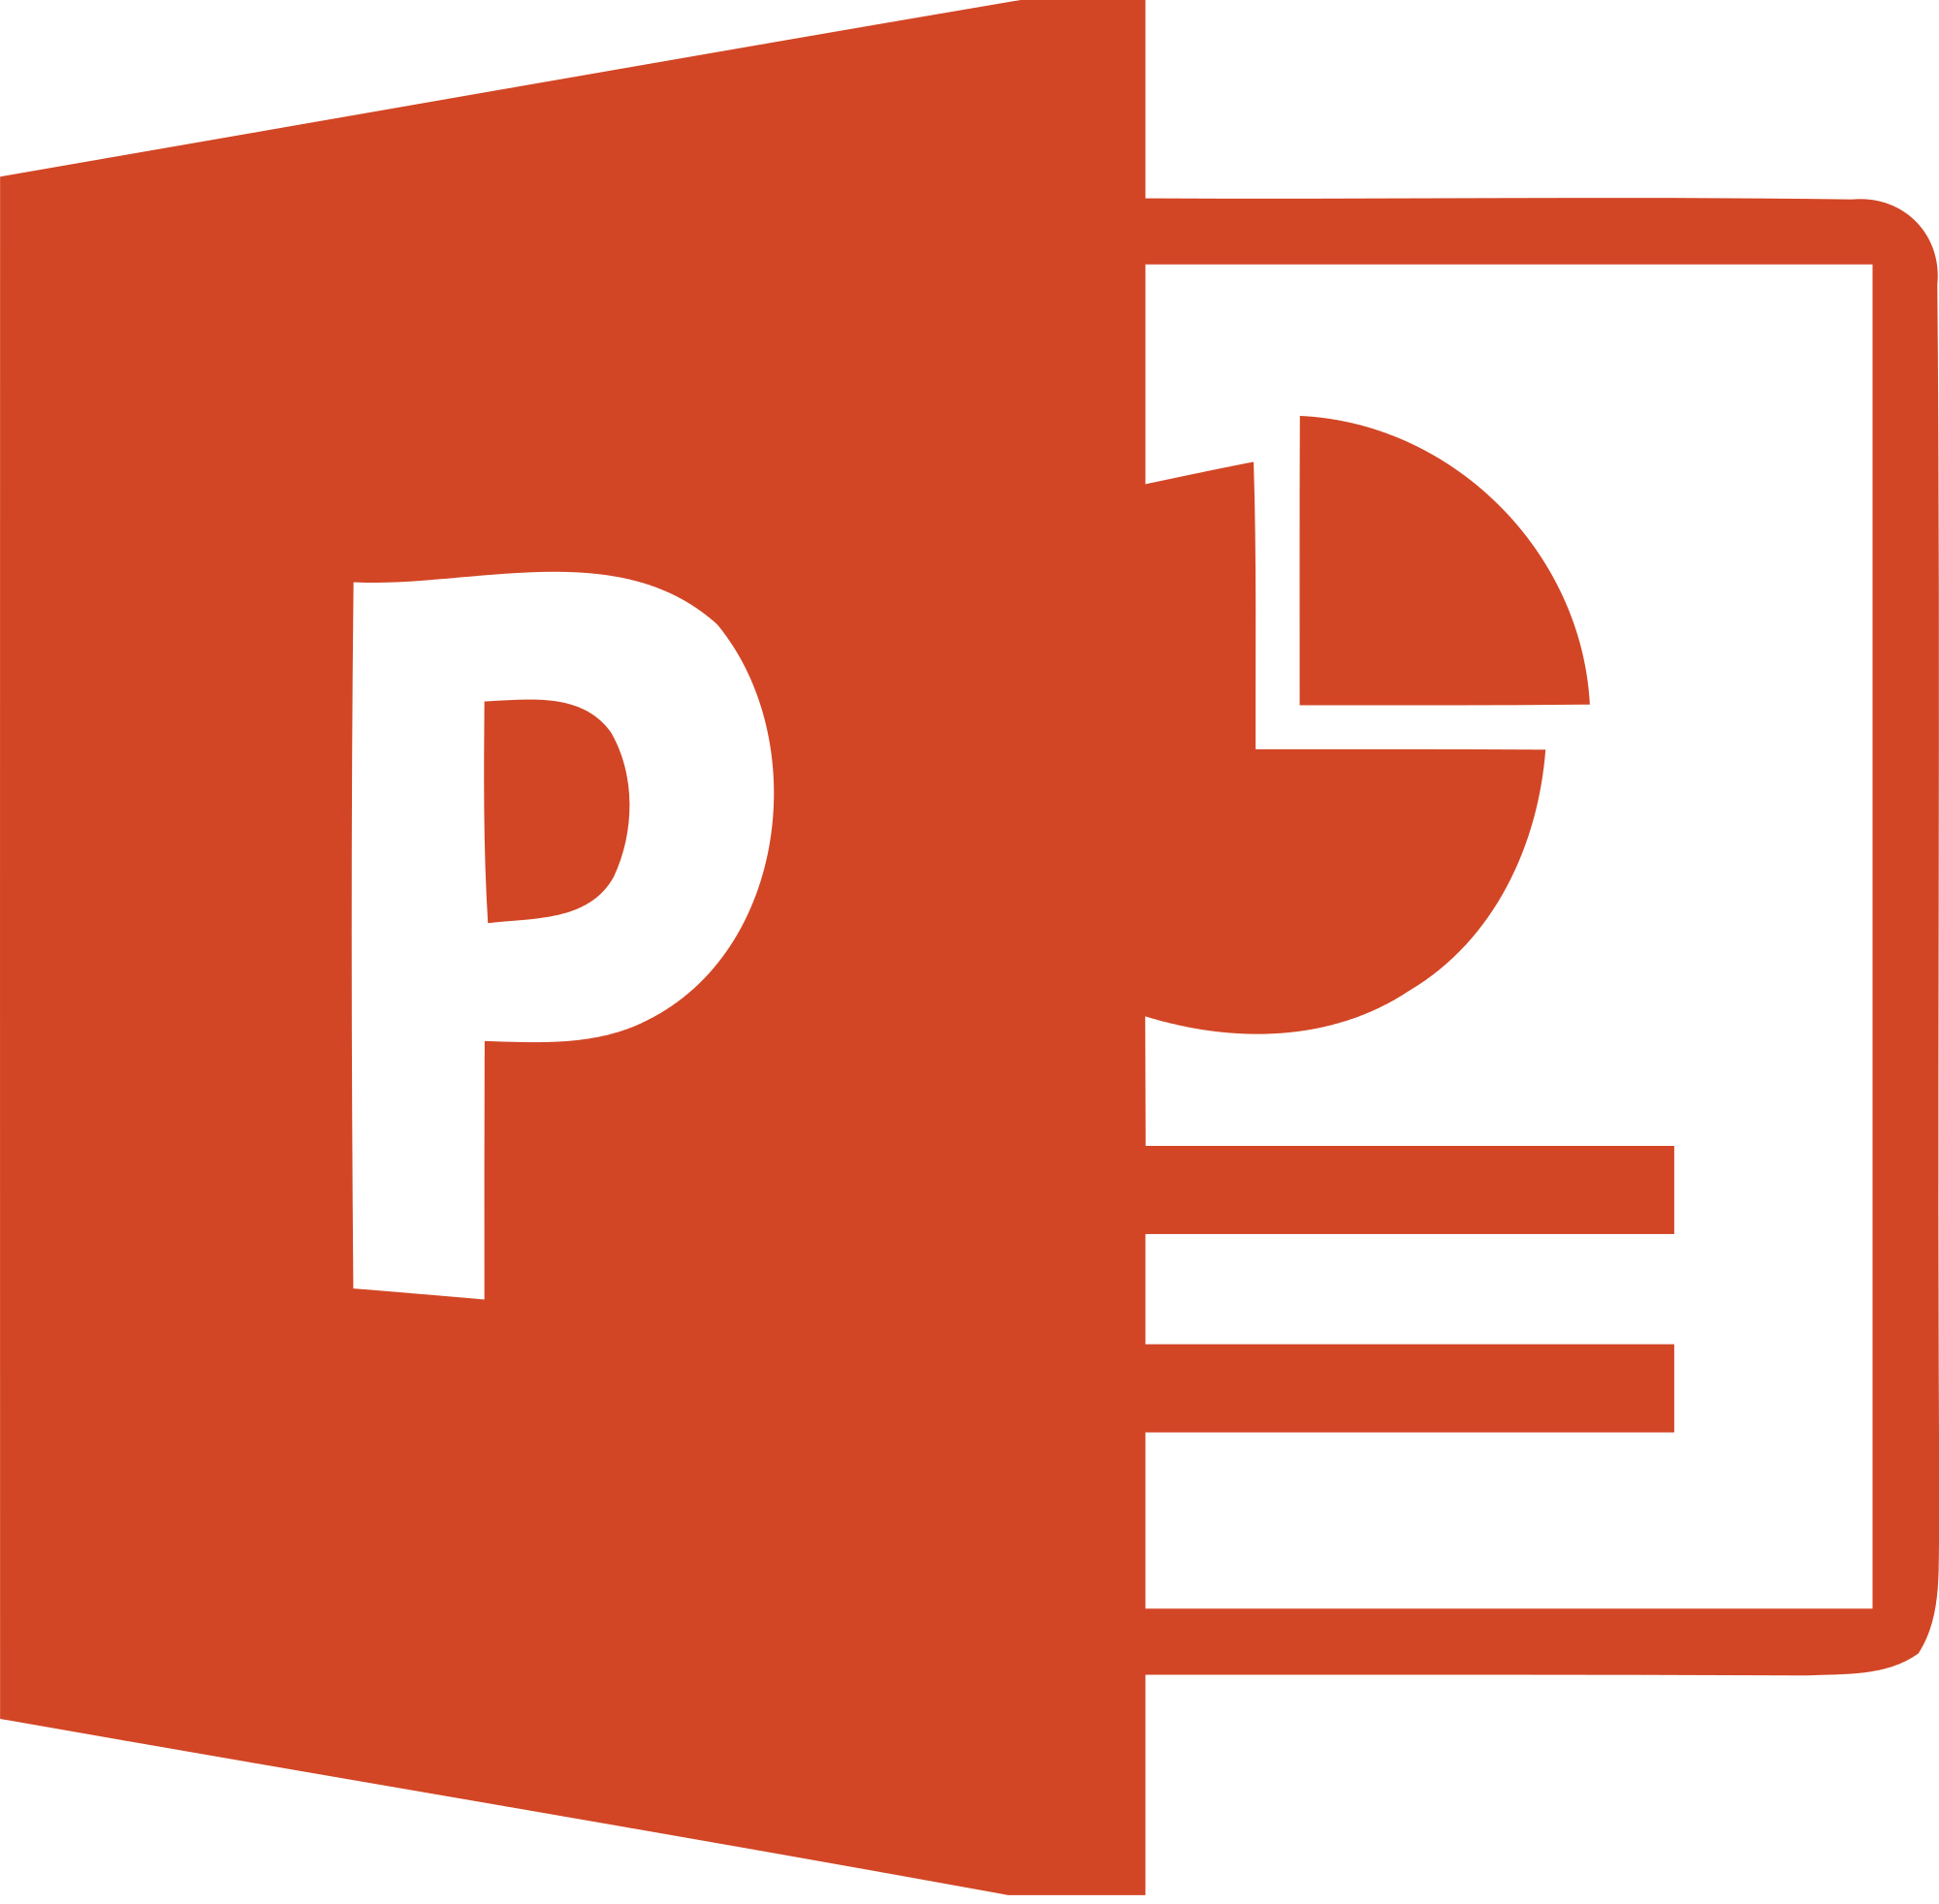 Logo Powerpoint 2016 ®Microsoft Corporation